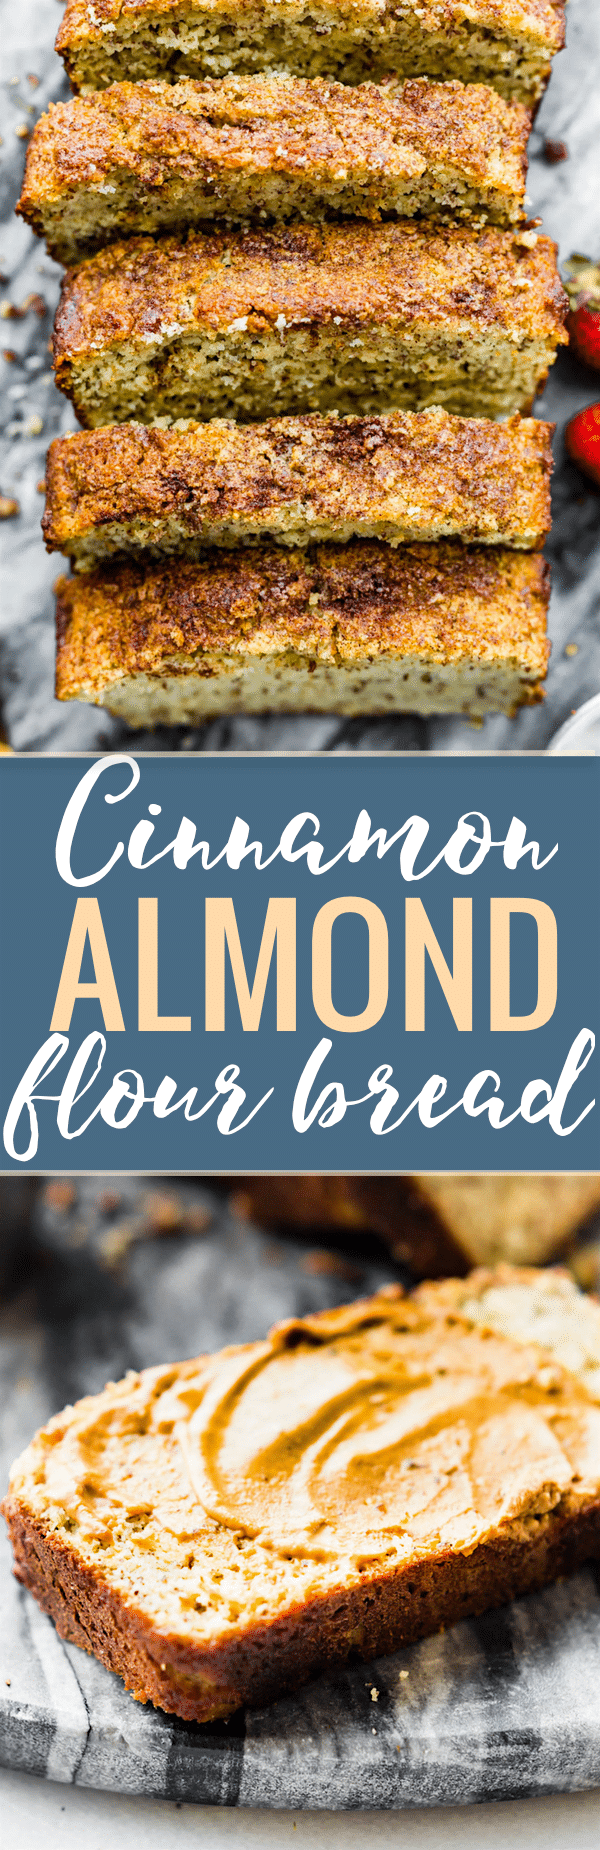 This simple and delicious cinnamon almond flour bread is a versatile paleo bread recipe you're whole family will love! Made with few ingredients; almond flour, flax seed, cinnamon, and eggs to name a few. A nourishing wholesome bread for breakfast or snacking. www.cottercrunch.com